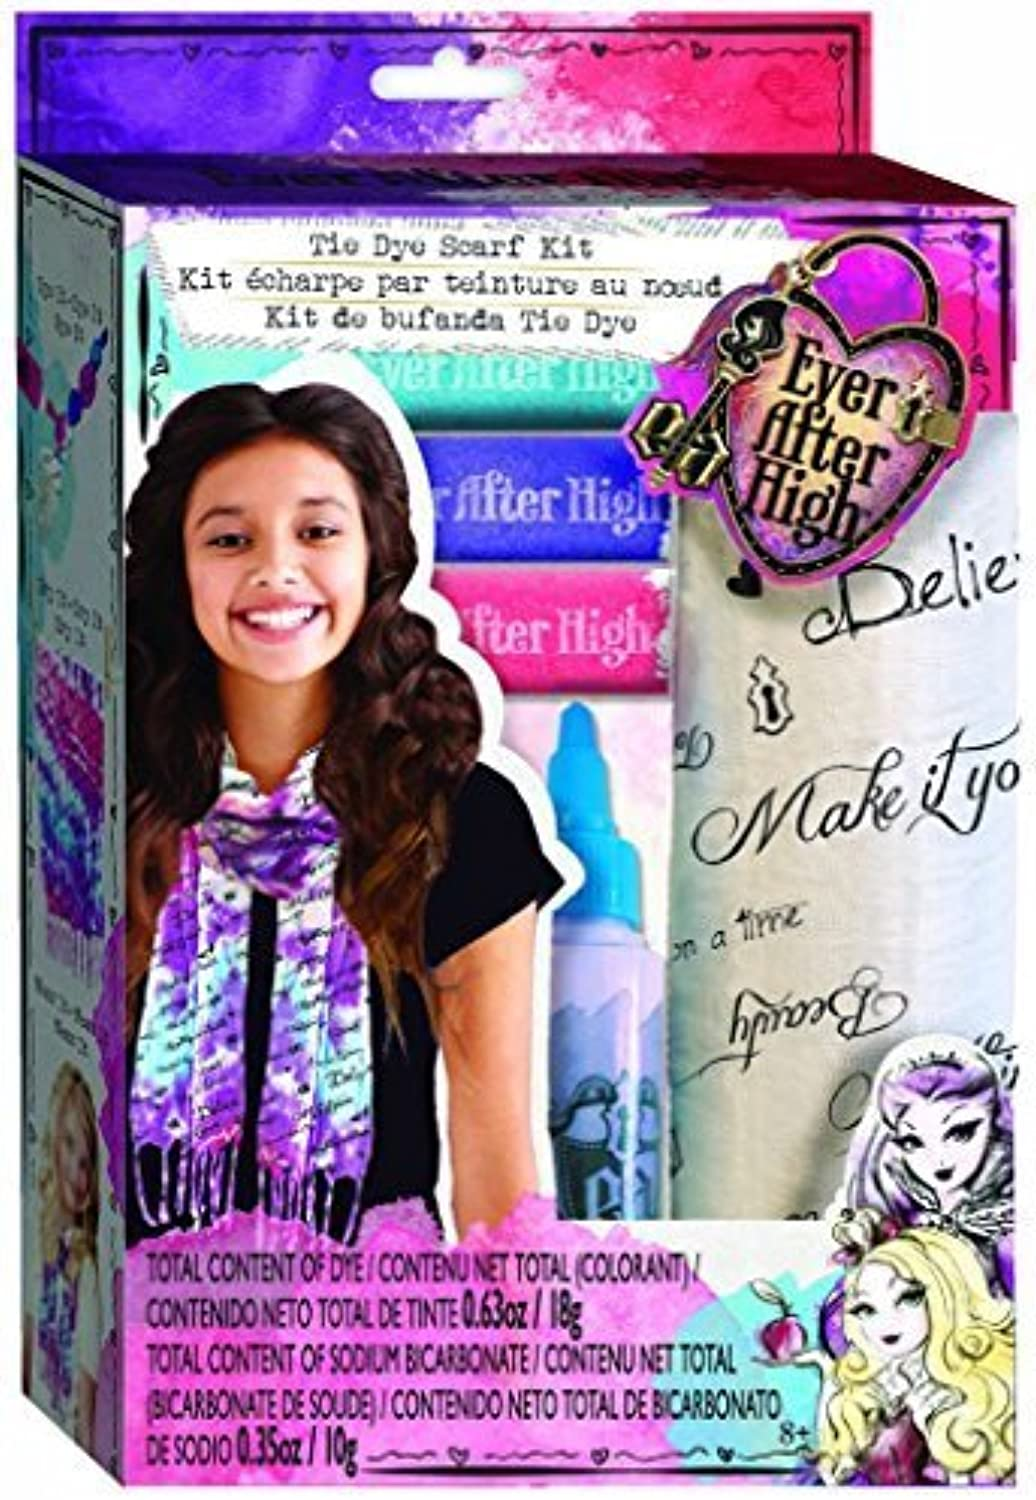 Ever After High Tie Dye Scarf Kit by fashion angels